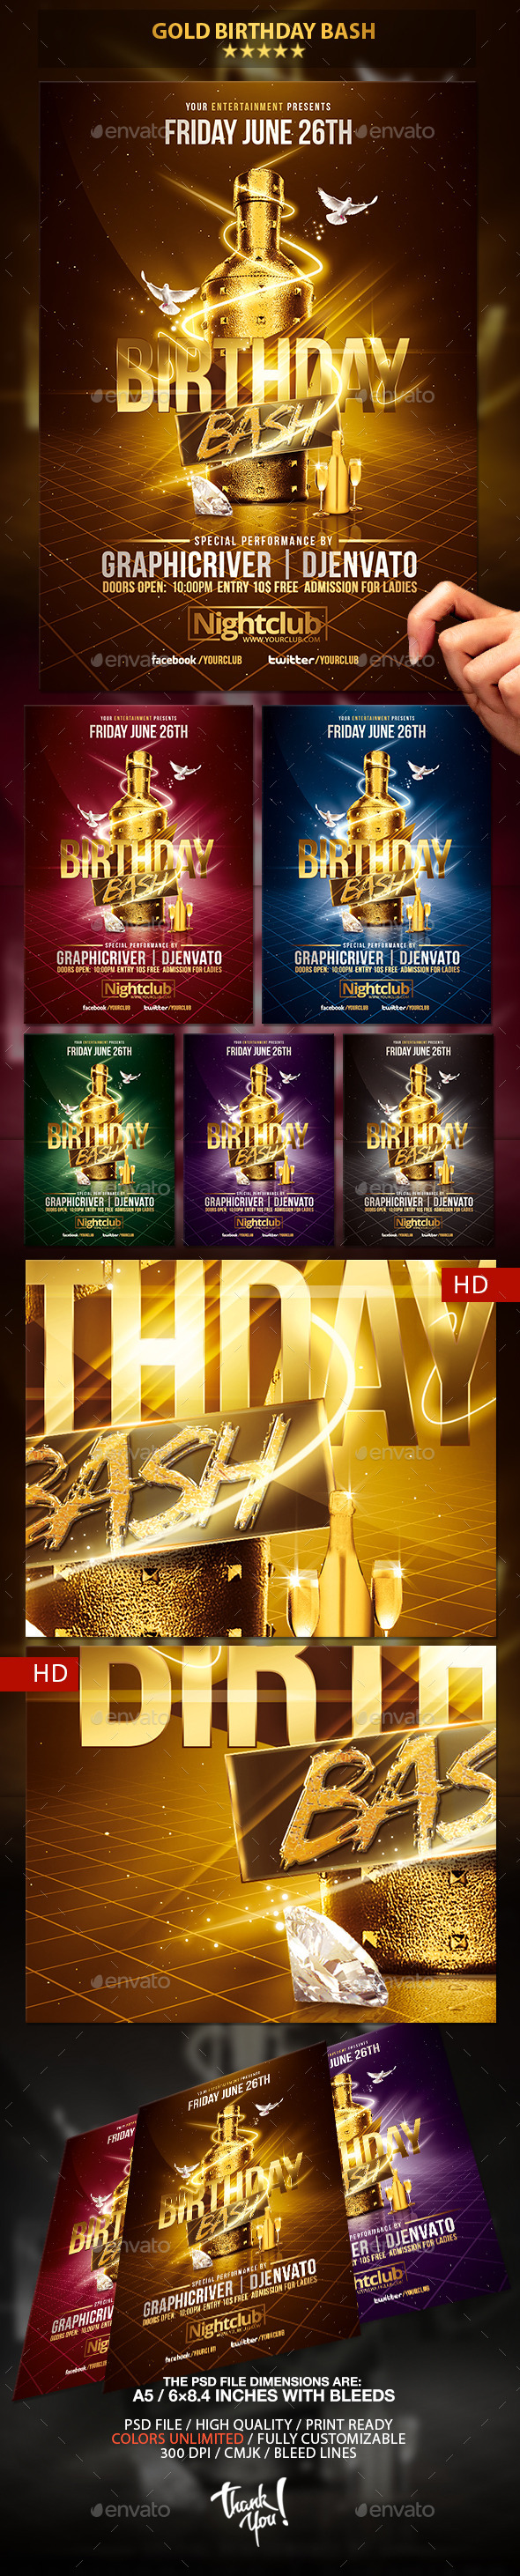 GraphicRiver Gold Birthday Bash Psd Flyer Template 10682689